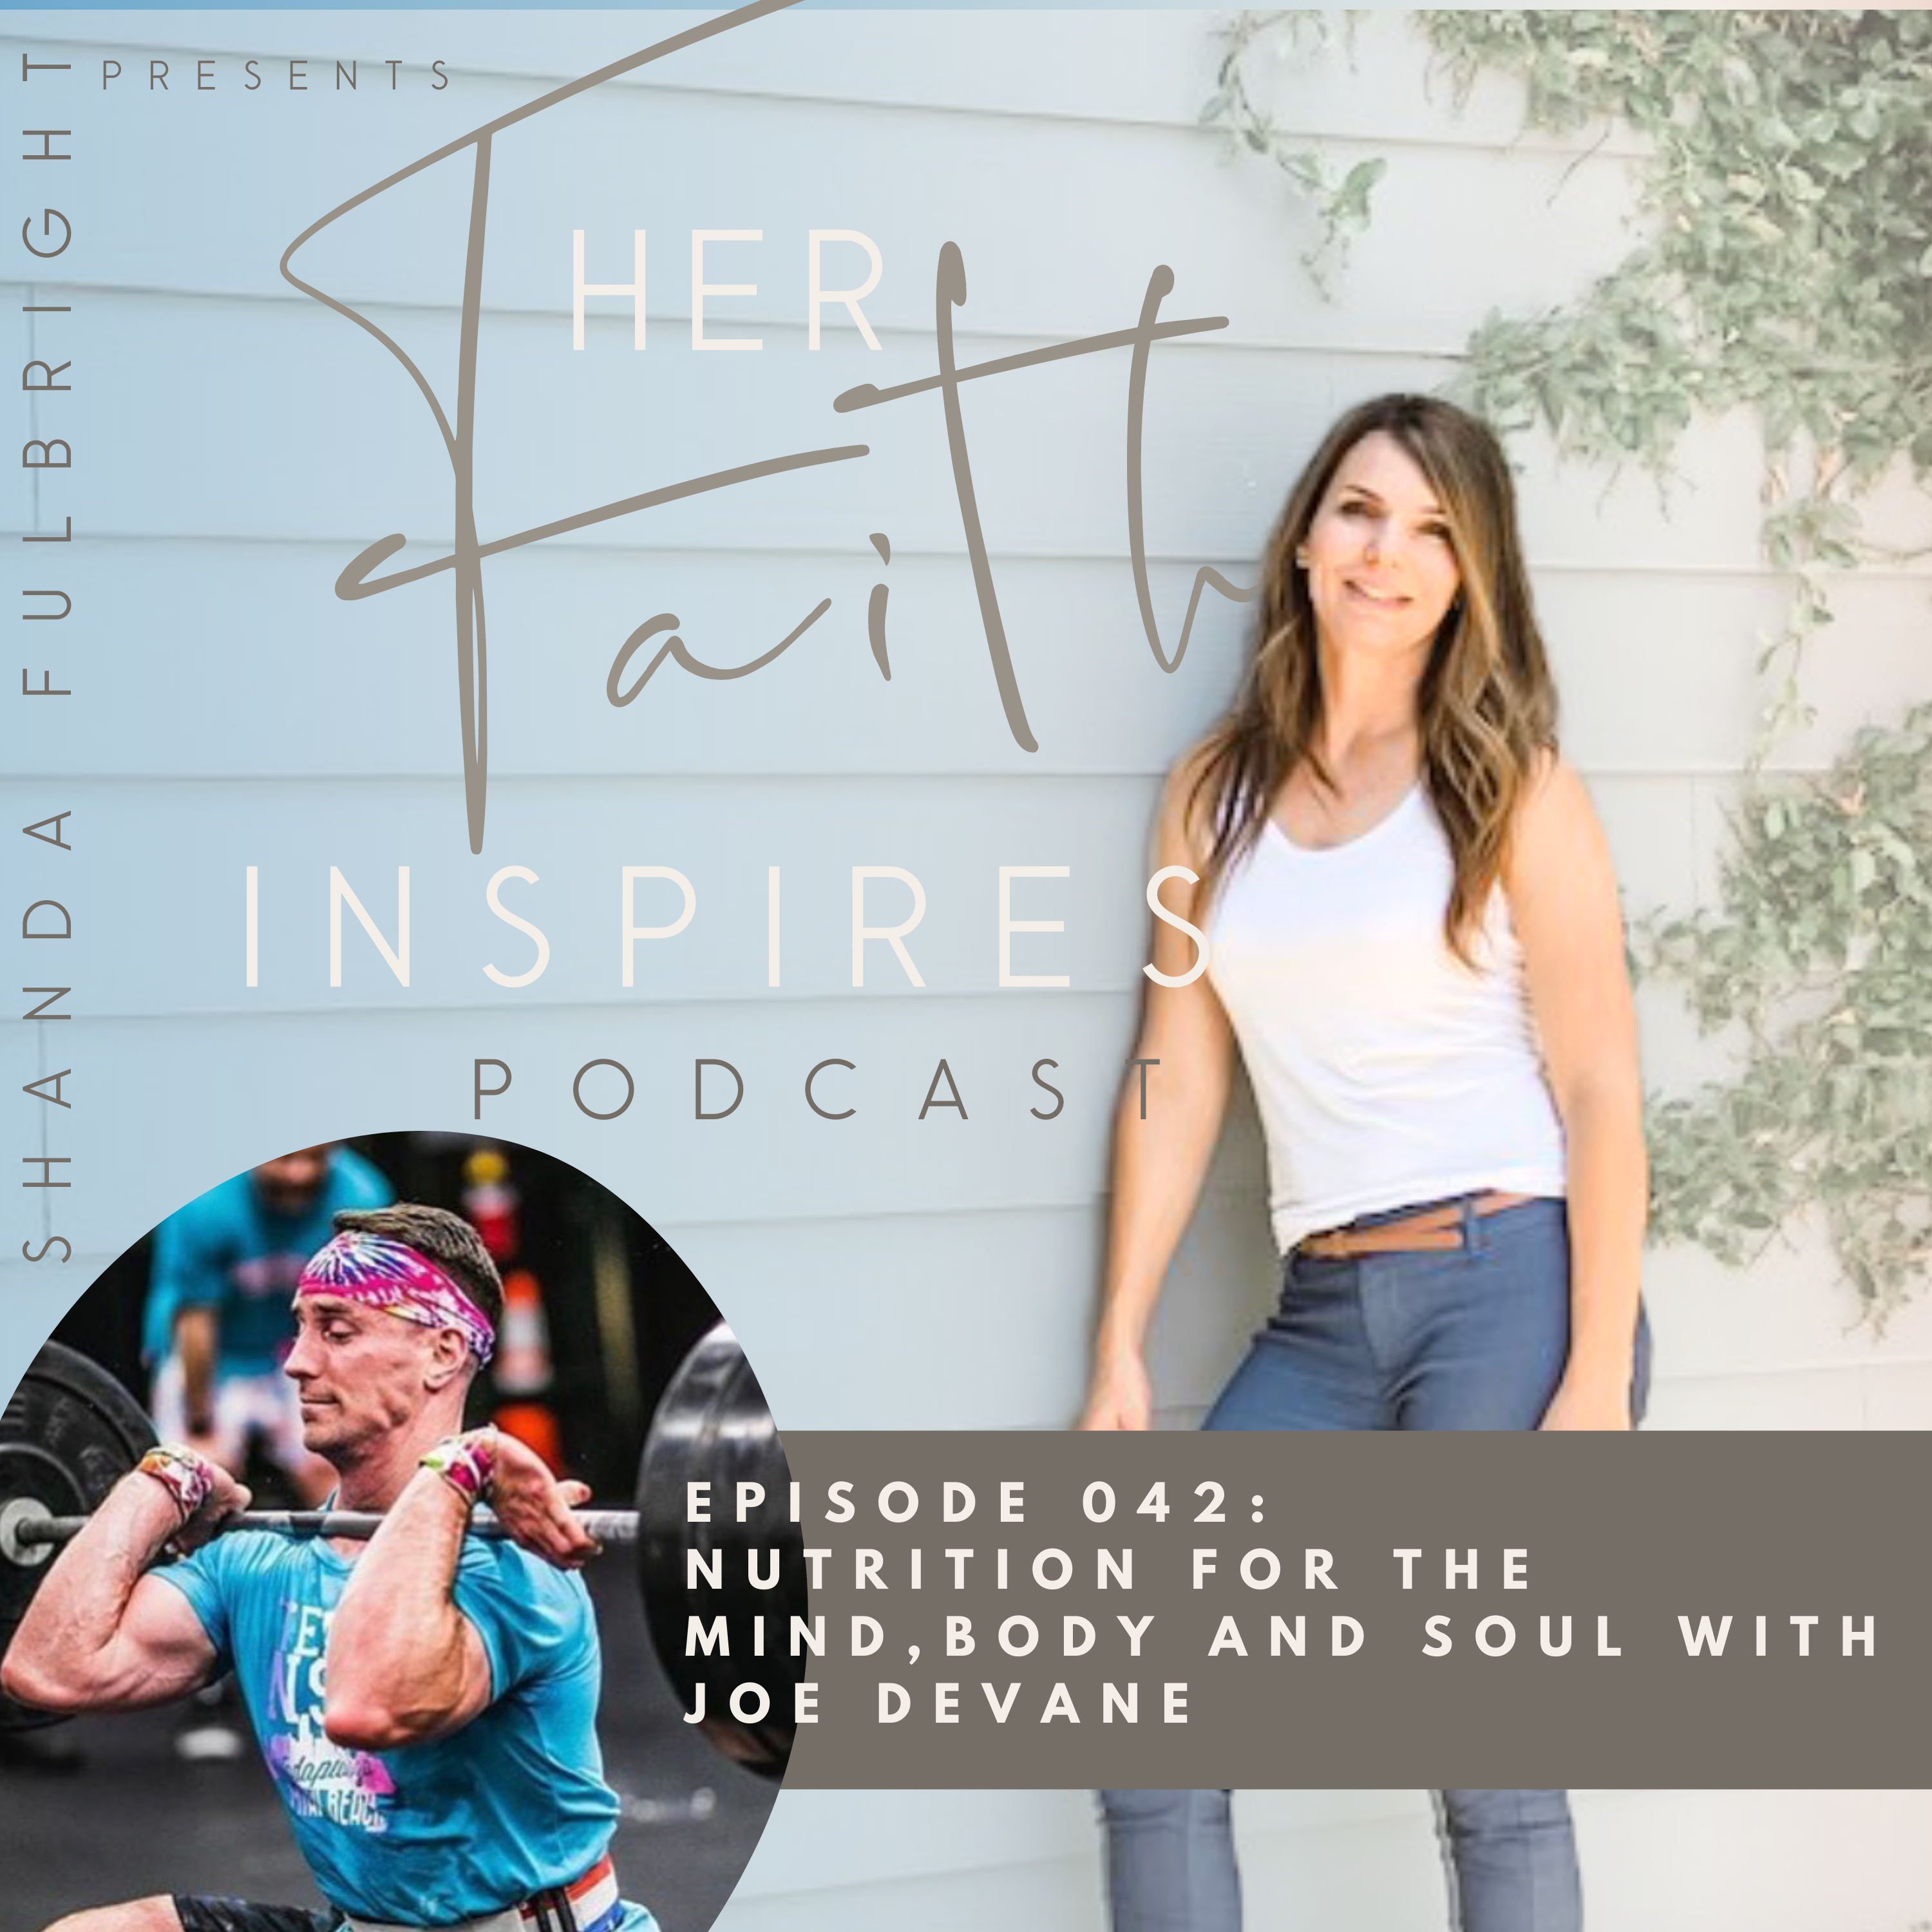 SF Podcast Episode 42 - HER FAITH INSPIRES 42 : Nutrition for the mind,body and soul with Joe Devane